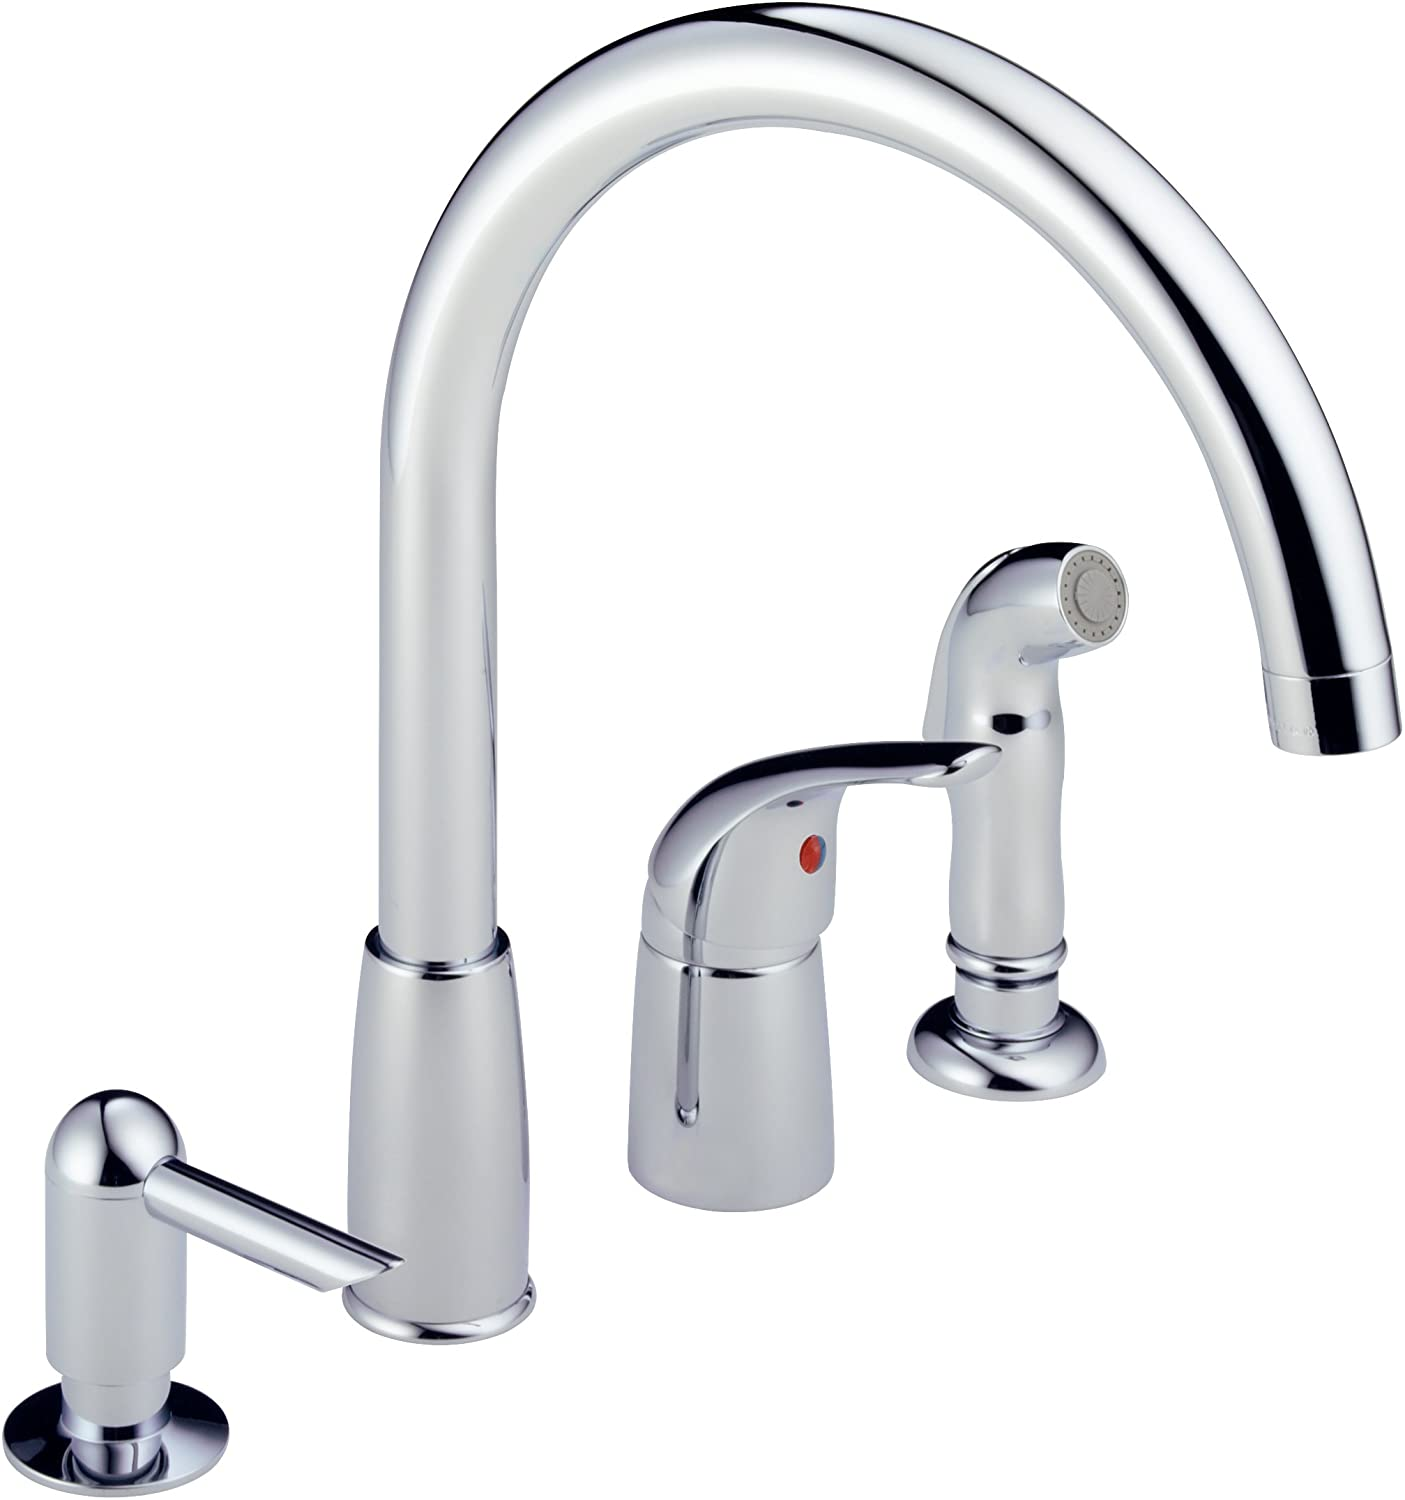 Peerless P188900LF SSSD Apex Single Handle Widespread Kitchen Waterfall  With Soap Dispenser, Stainless   Pot Filler Kitchen Sink Faucets    Amazon.com